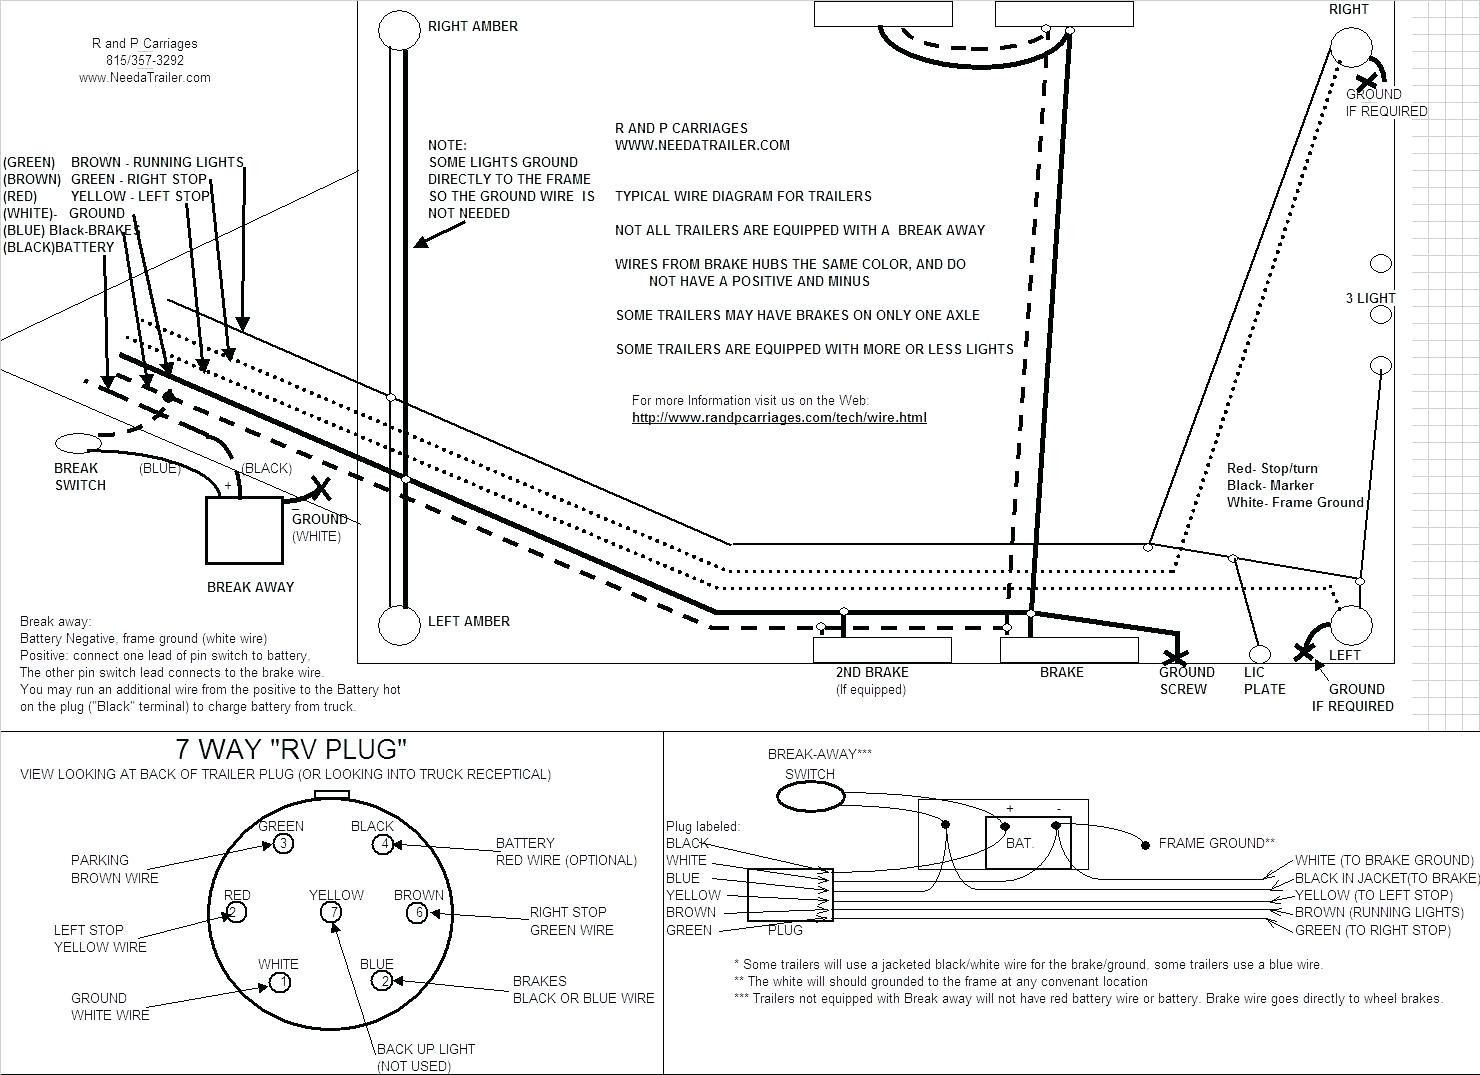 7 rv blade wiring diagram dodge wiring diagrams schematics 7 spade trailer plug wiring unique 7 spade trailer wiring diagram pattern electrical system 7 blade trailer connector diagram 7 pole